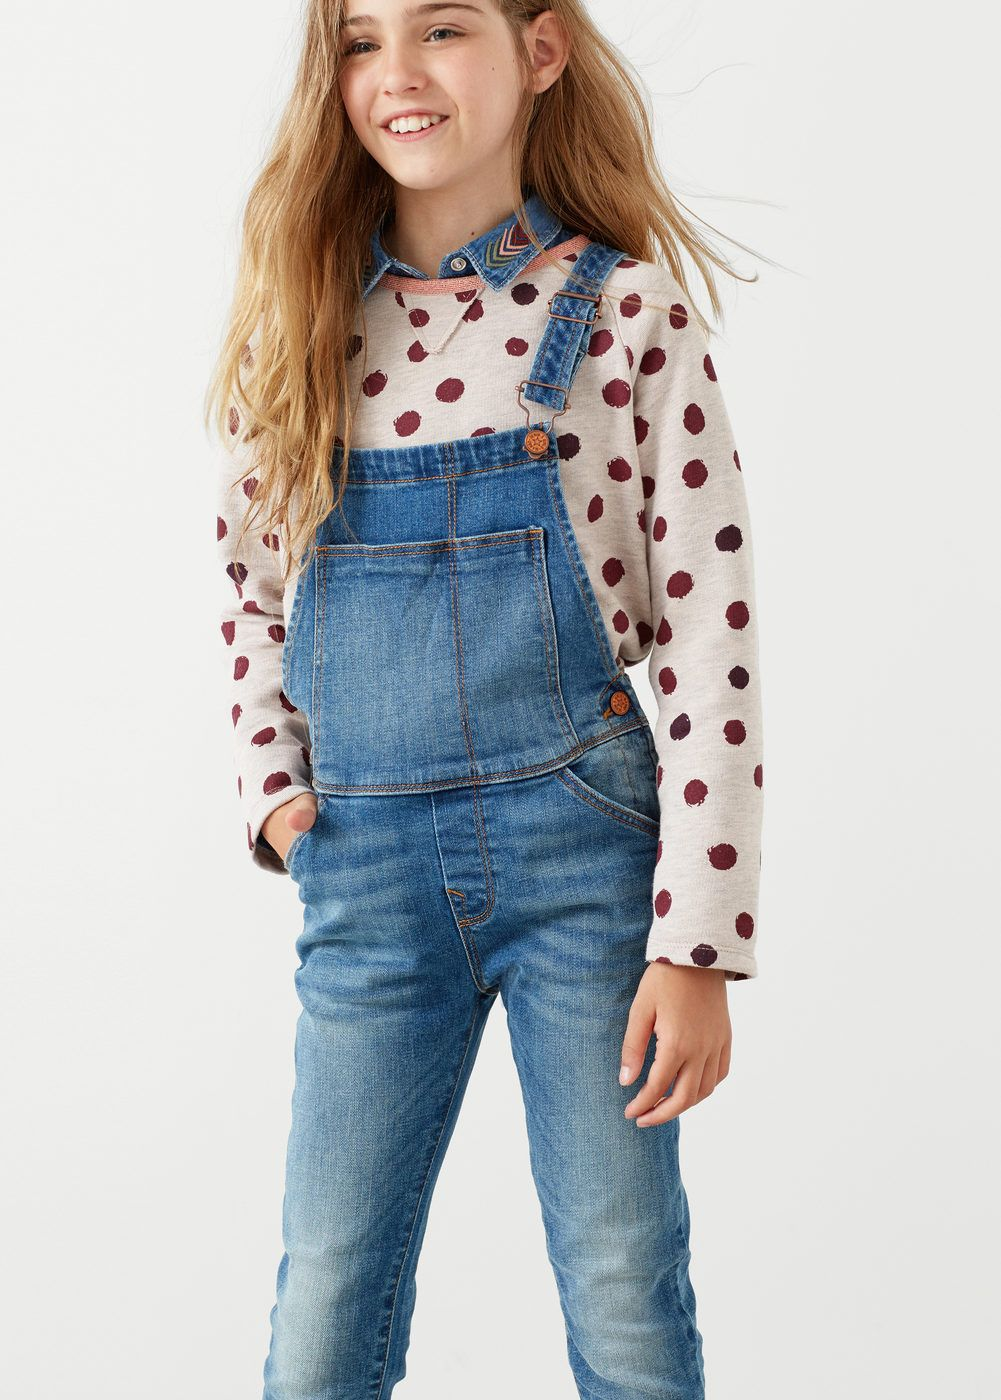 wholesale outlet sale uk Good Prices Medium denim dungarees - Girls | outfits | Baby girl jeans ...